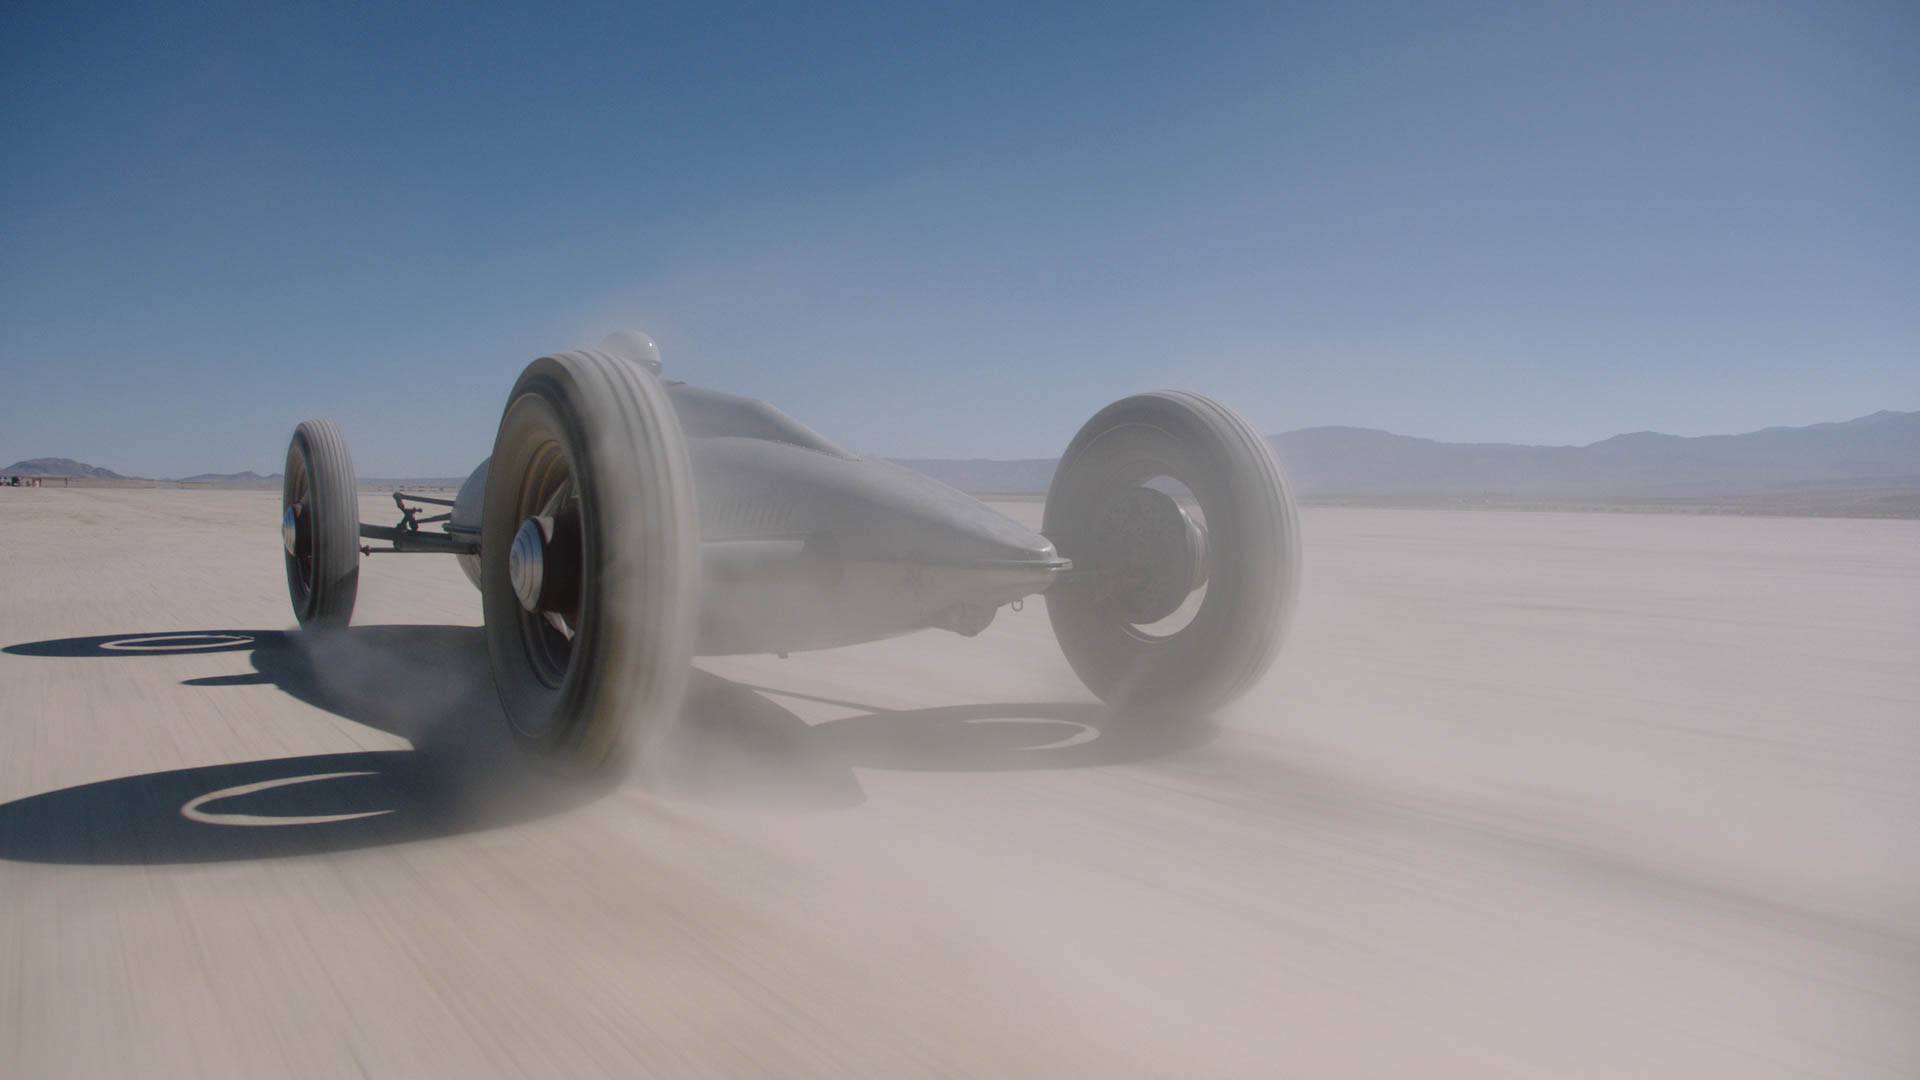 1949 Belly Tank Lakester racing in the desert